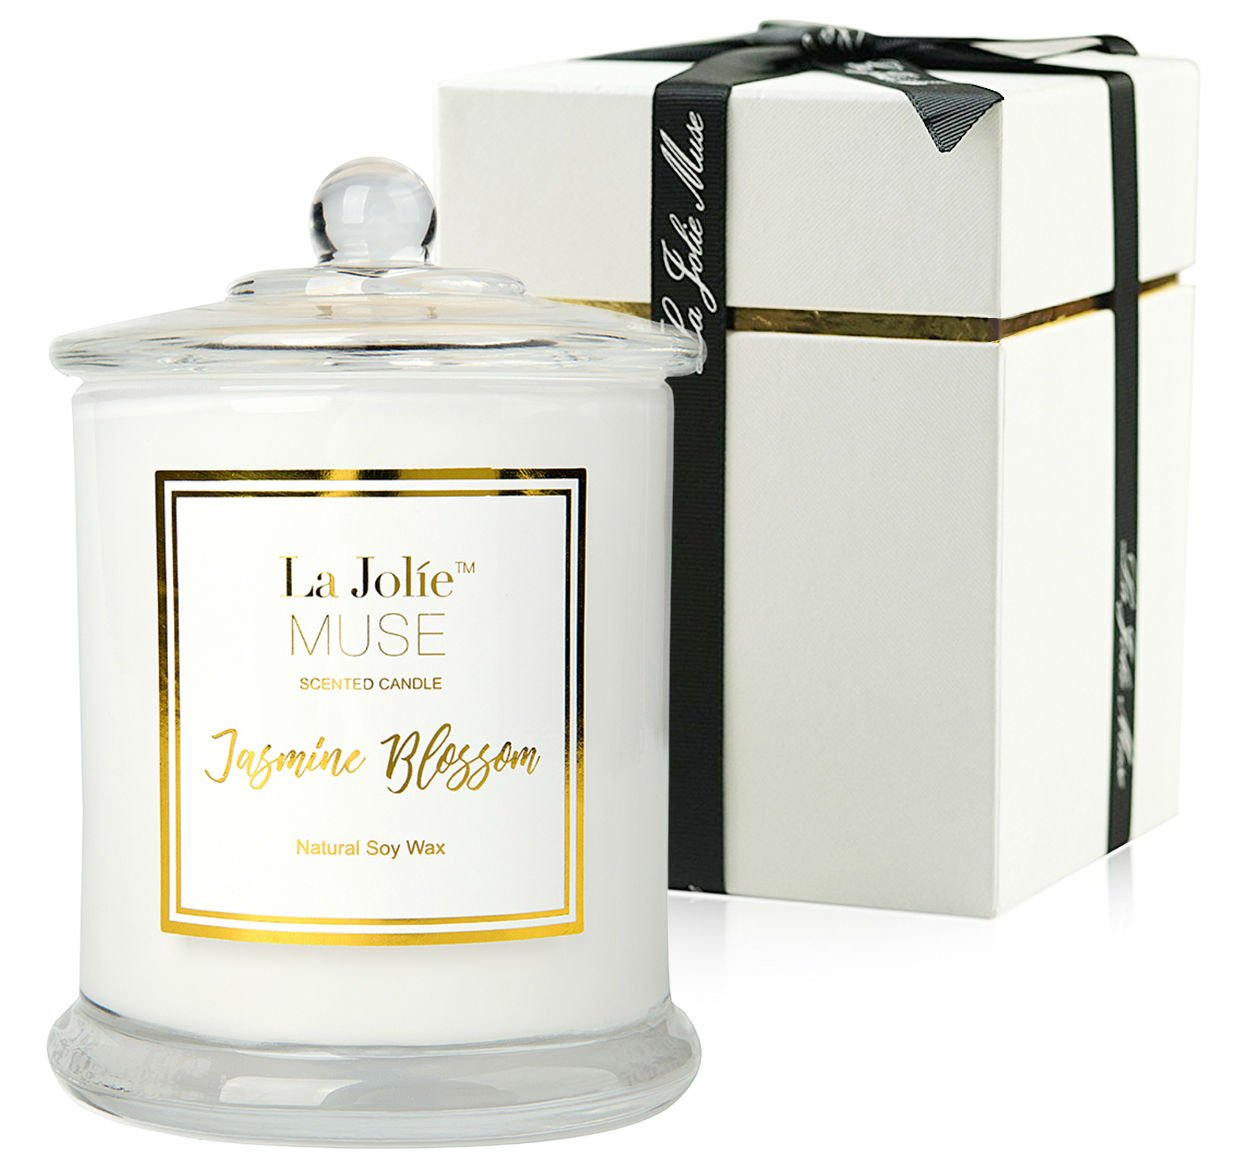 LA JOLIE MUSE Jasmine Scented Candle Gift Soy Wax, Glass Jar Candle, 55 Hours Burn, Fine Home Fragrance, Gift Candle for